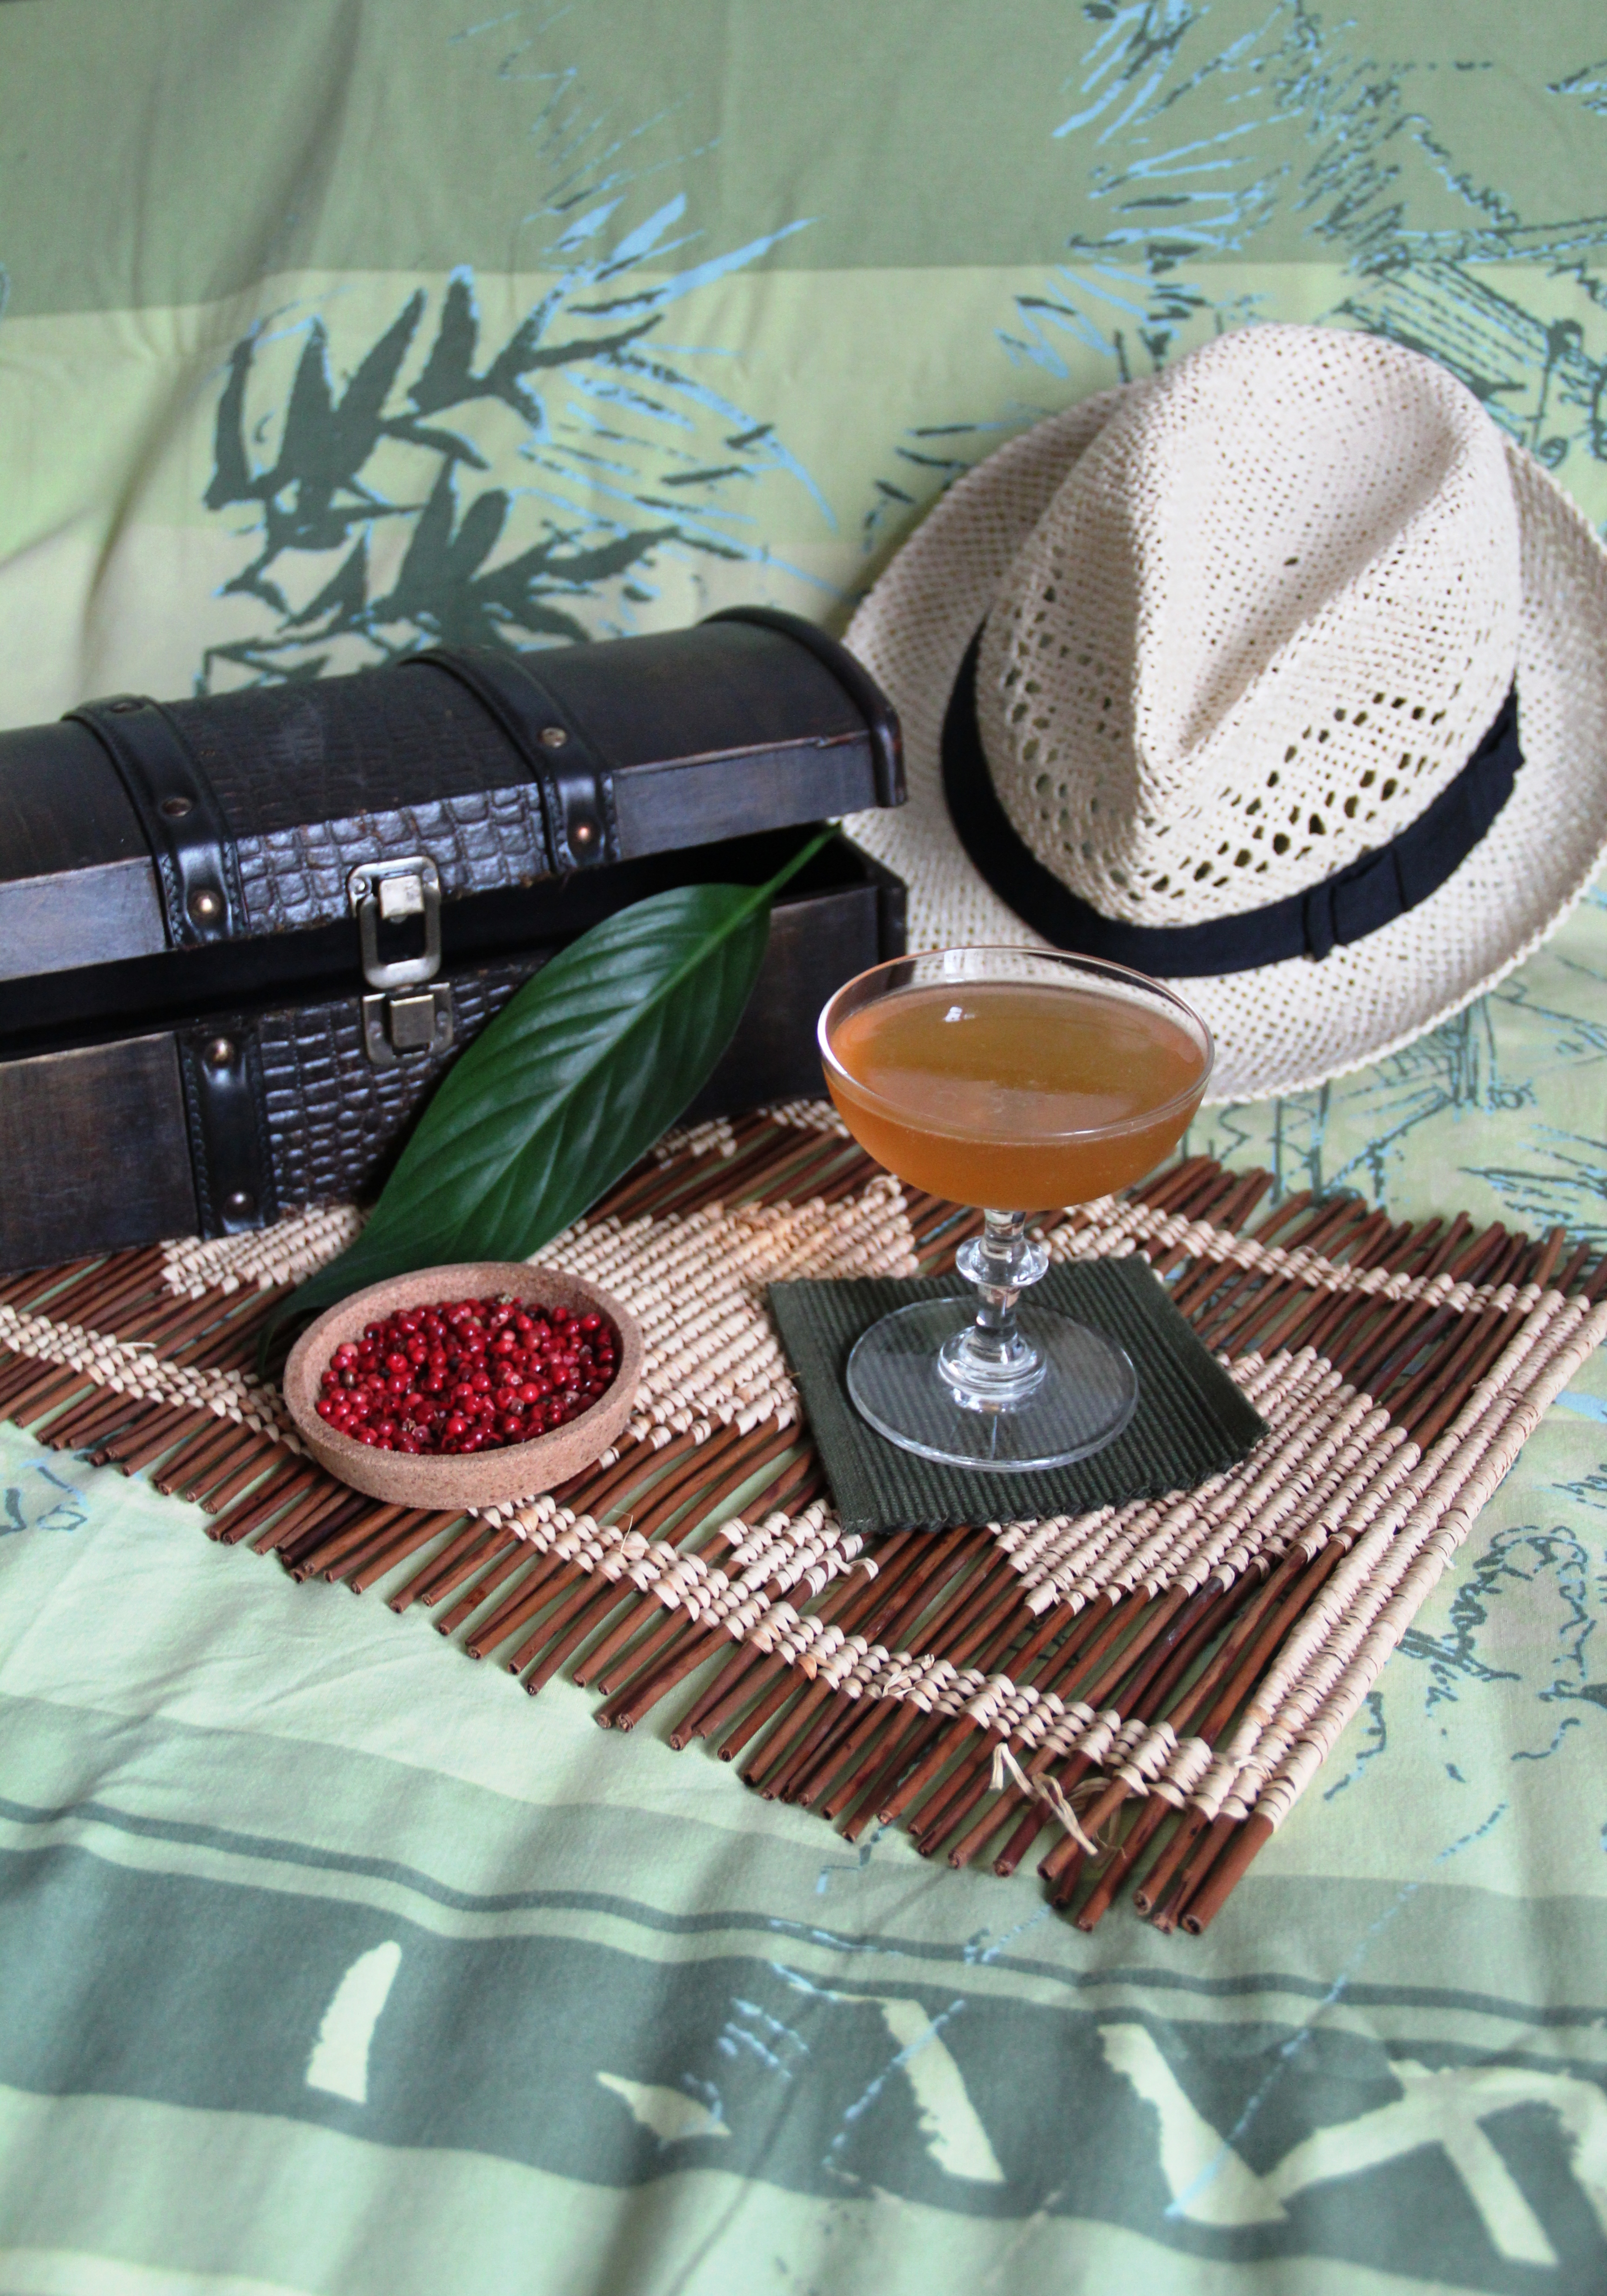 Bartenders at work by Infosbar : le CV express de Marie Picard